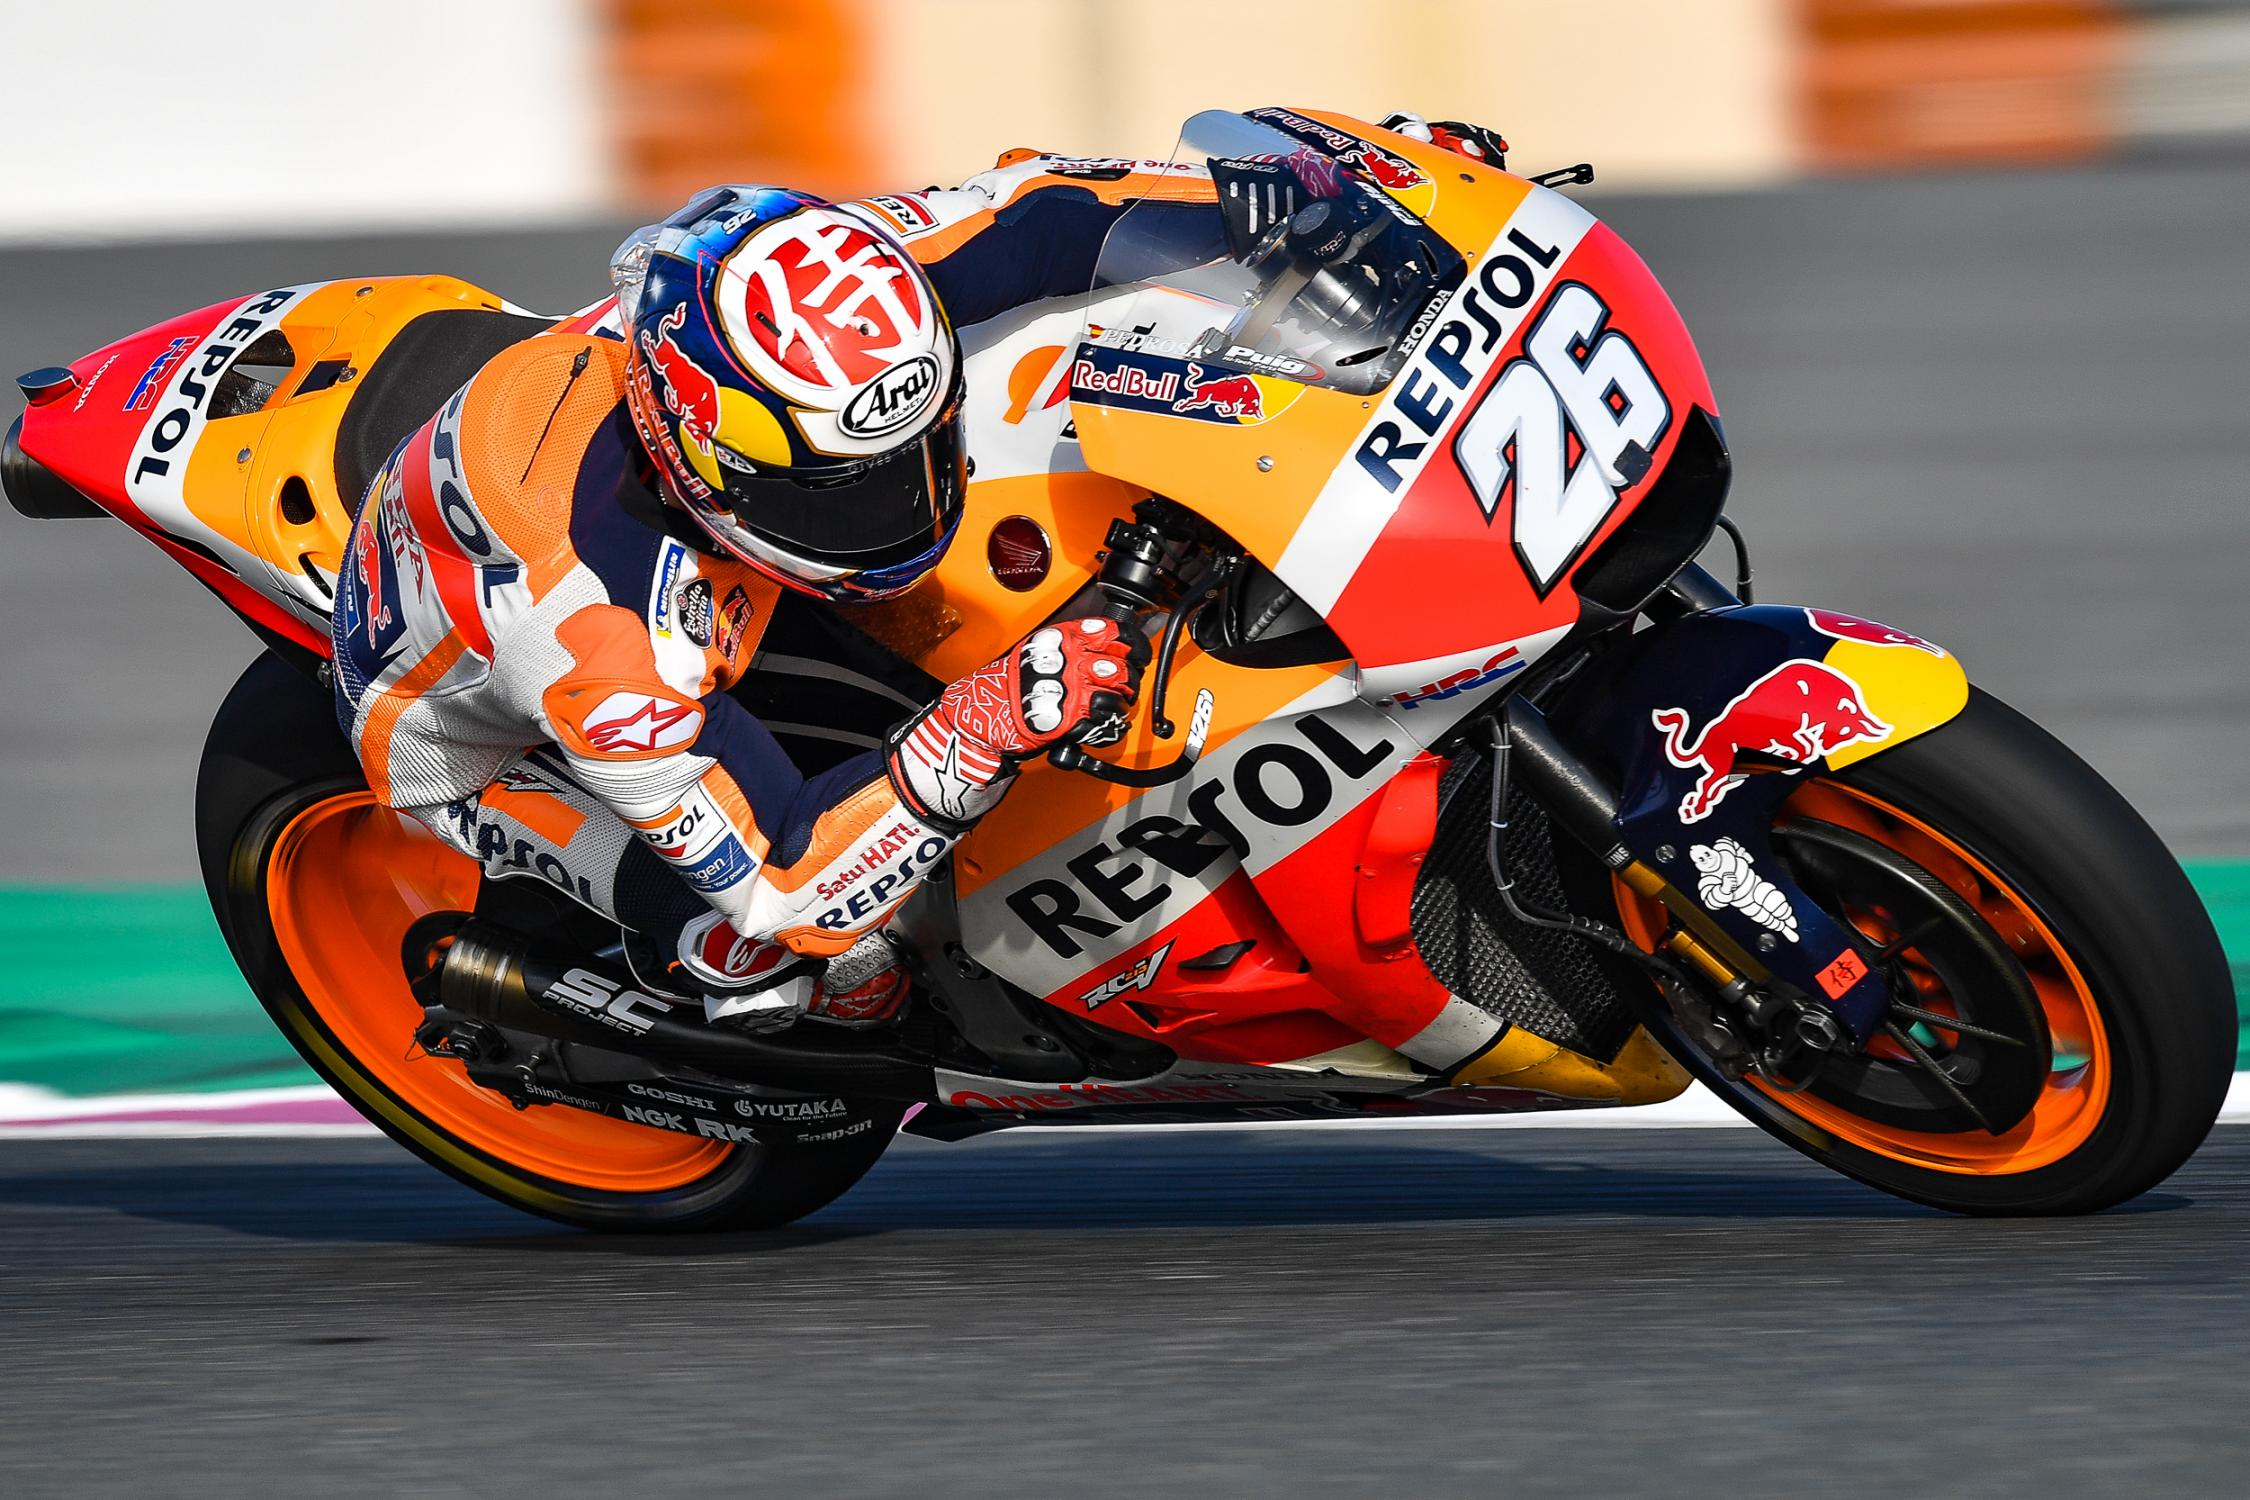 26-dani-pedrosa-esplg5_2392_0.gallery_full_top_fullscreen.jpg